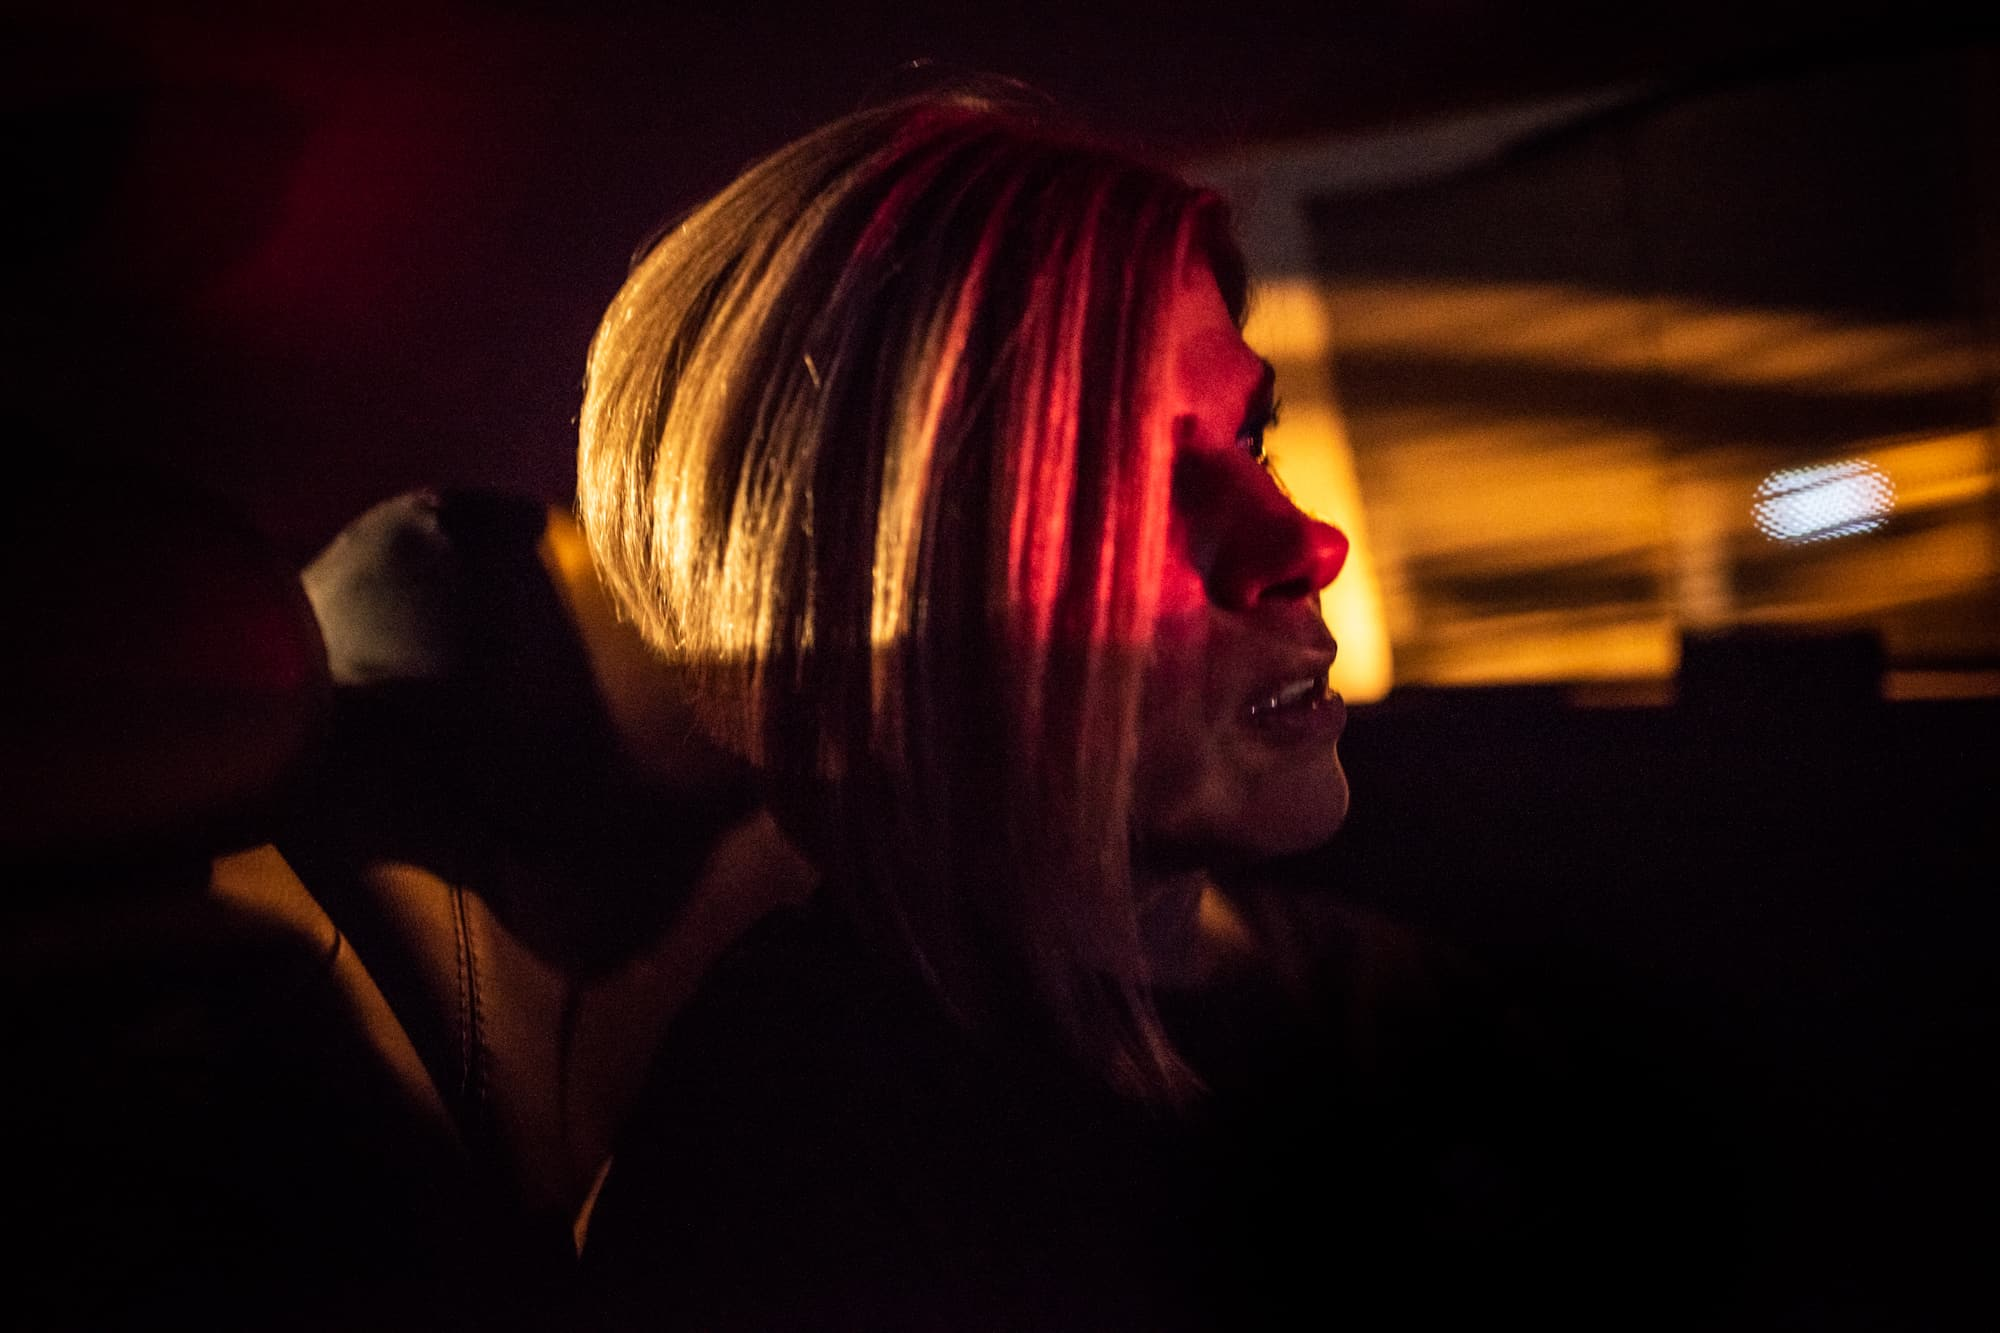 Tima Kurdi while driving back at night from Gawilan refugee camp, Iraq, Sept 2nd, 2019. She often has panic attacks since the tragedy.